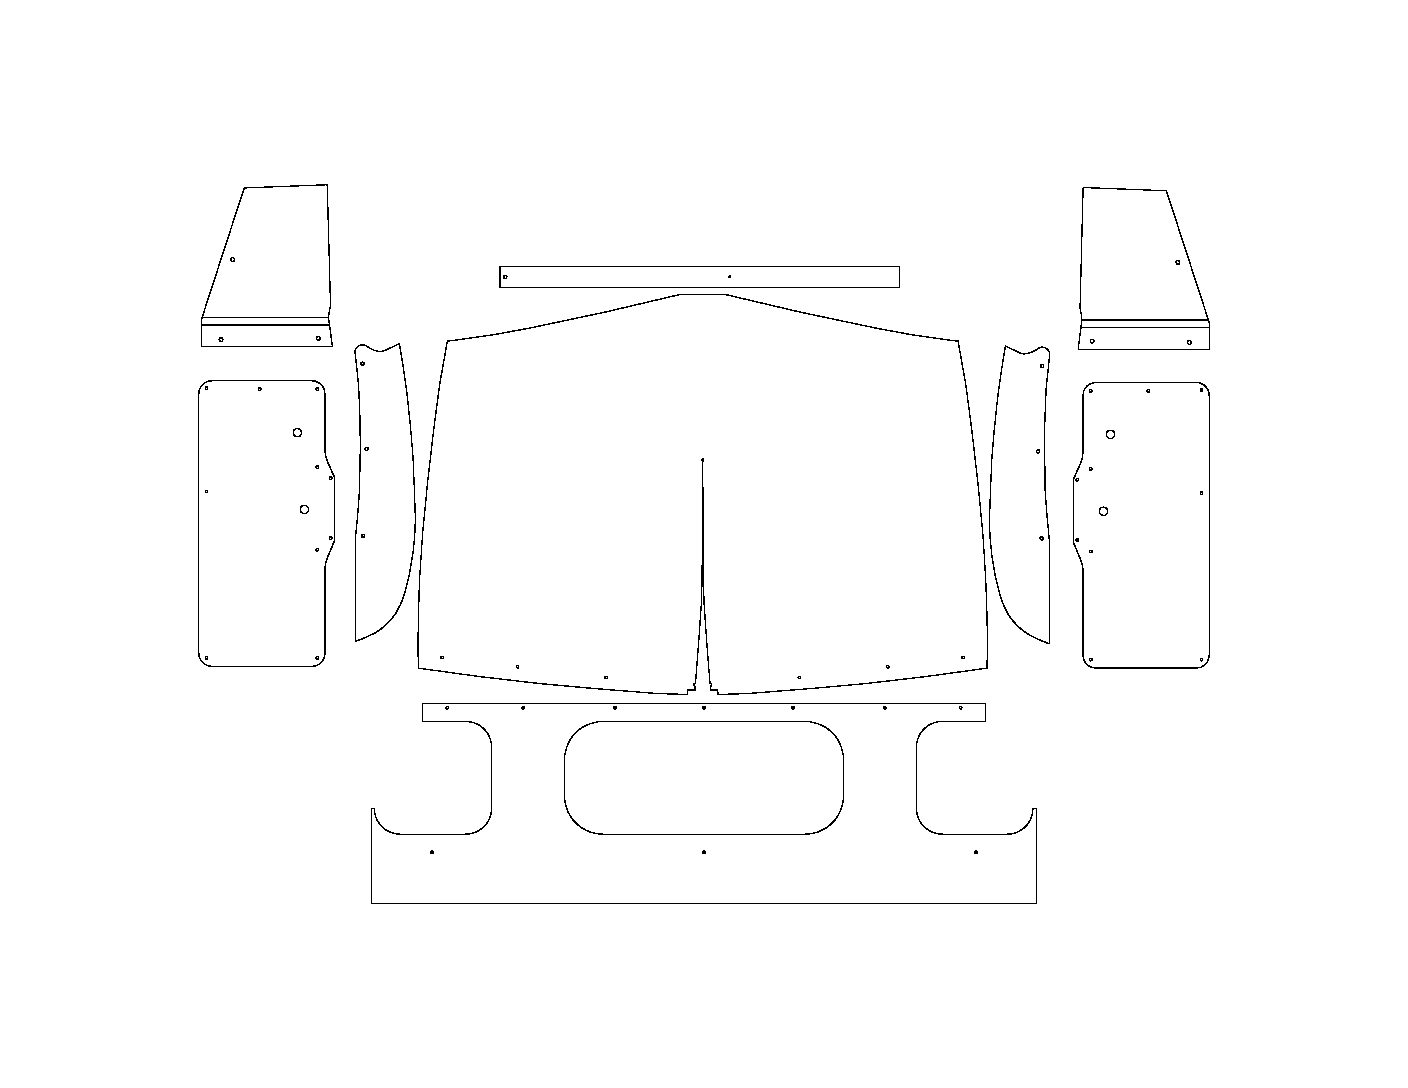 48-50 Dodge Truck Pilot House Interior Kit – Hump Door Panels